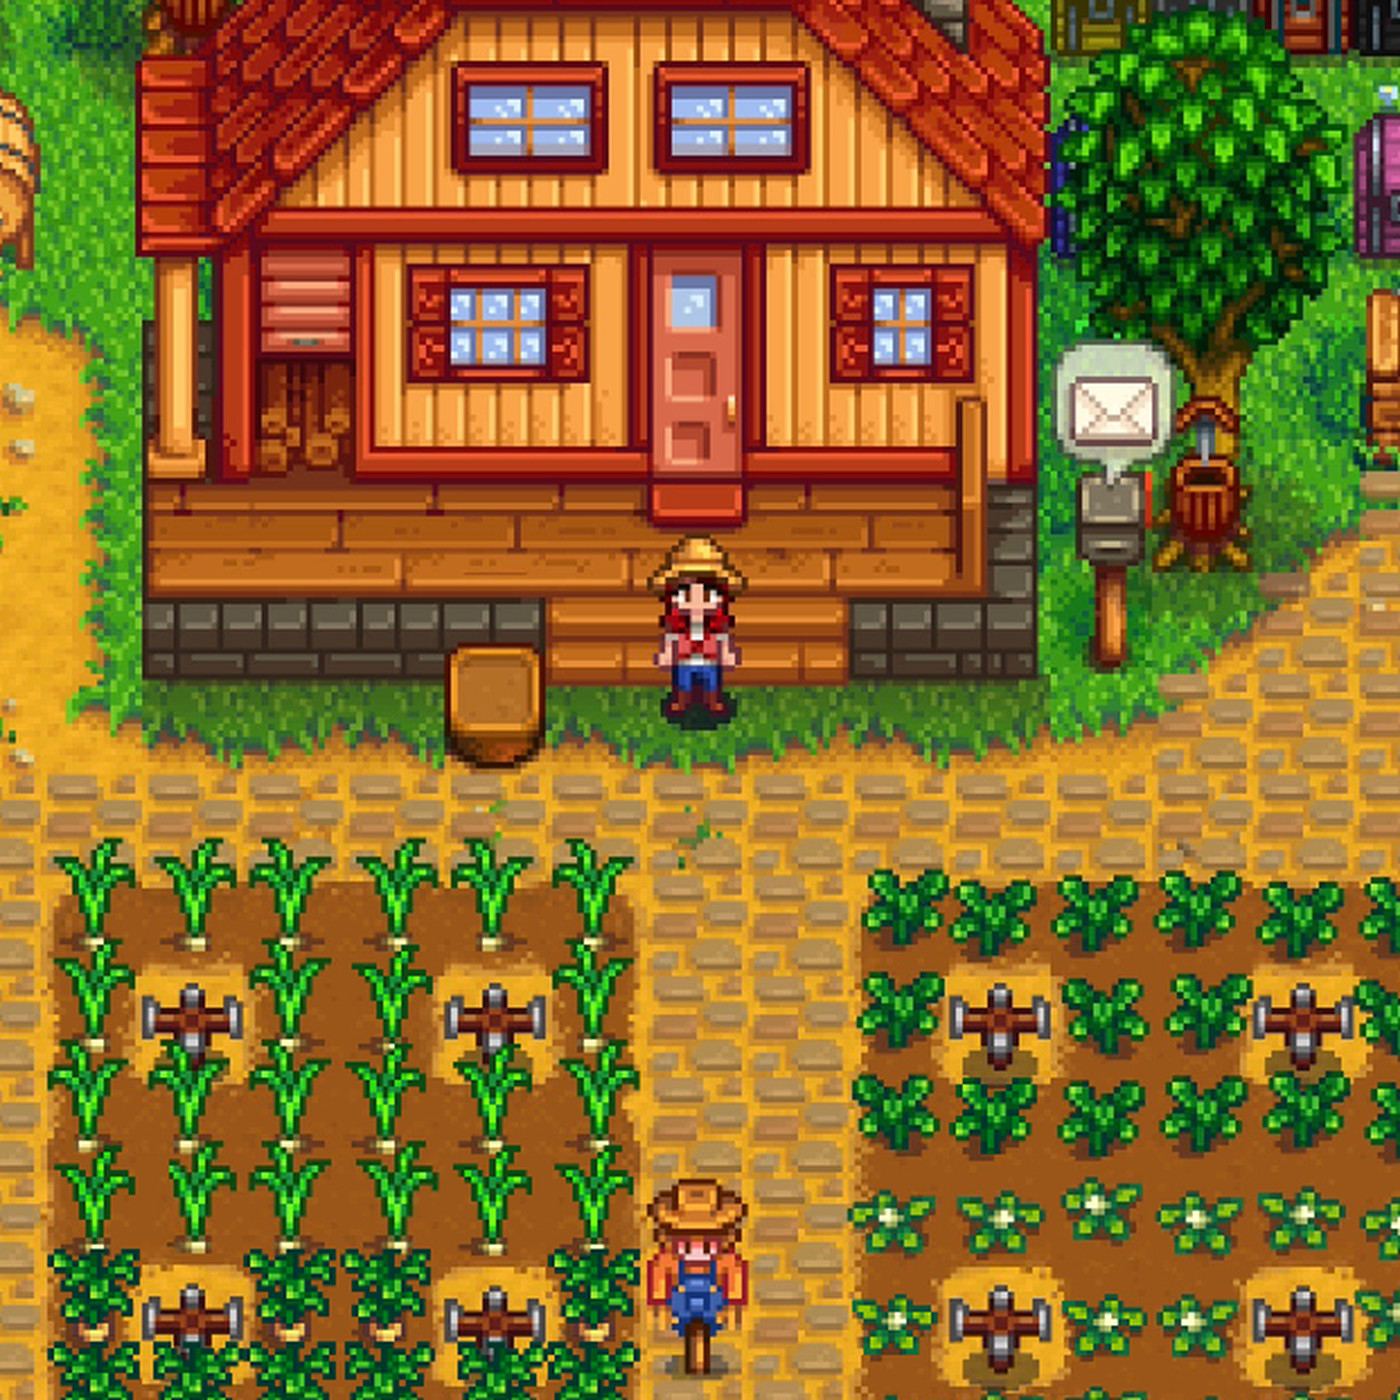 Stardew Valley to launch on iPhone, Android - Polygon